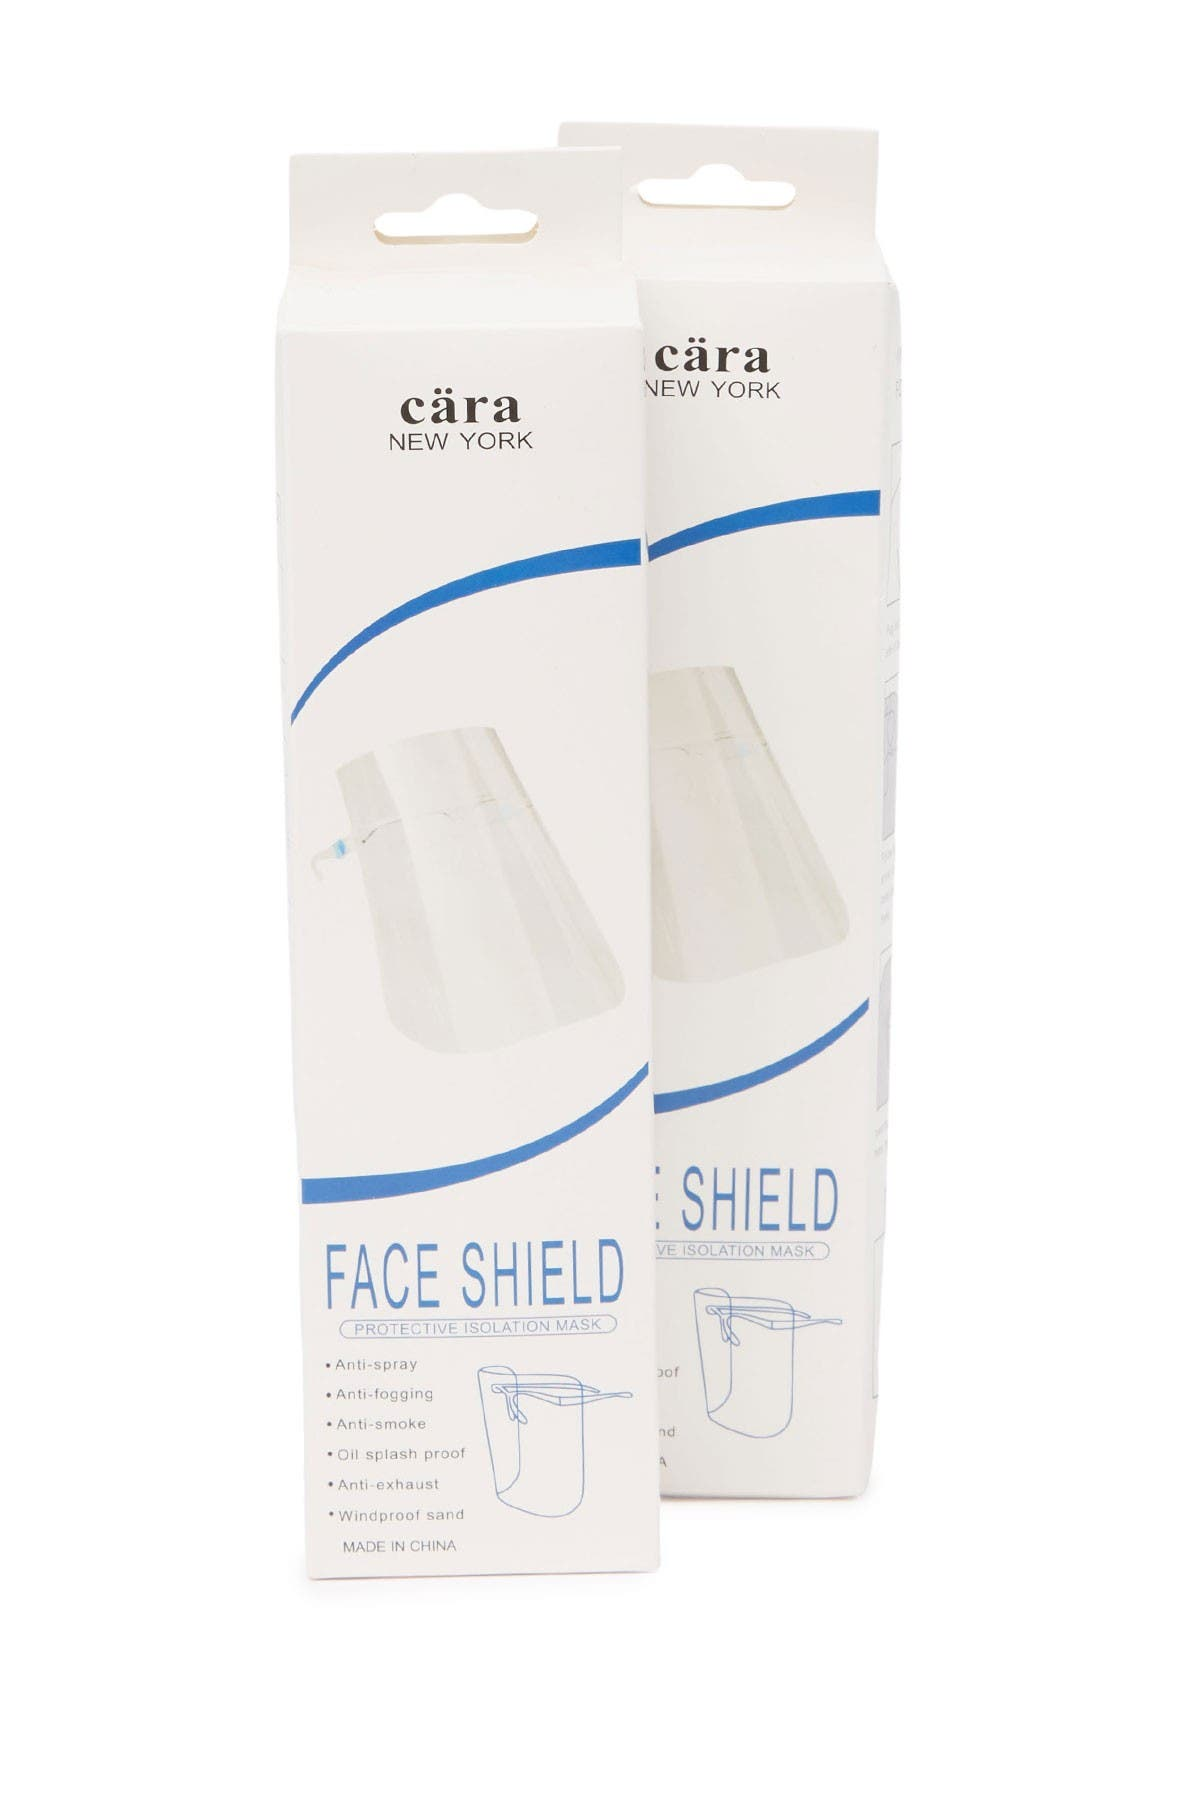 Image of Cara Accessories Face Shield - Pack of 2